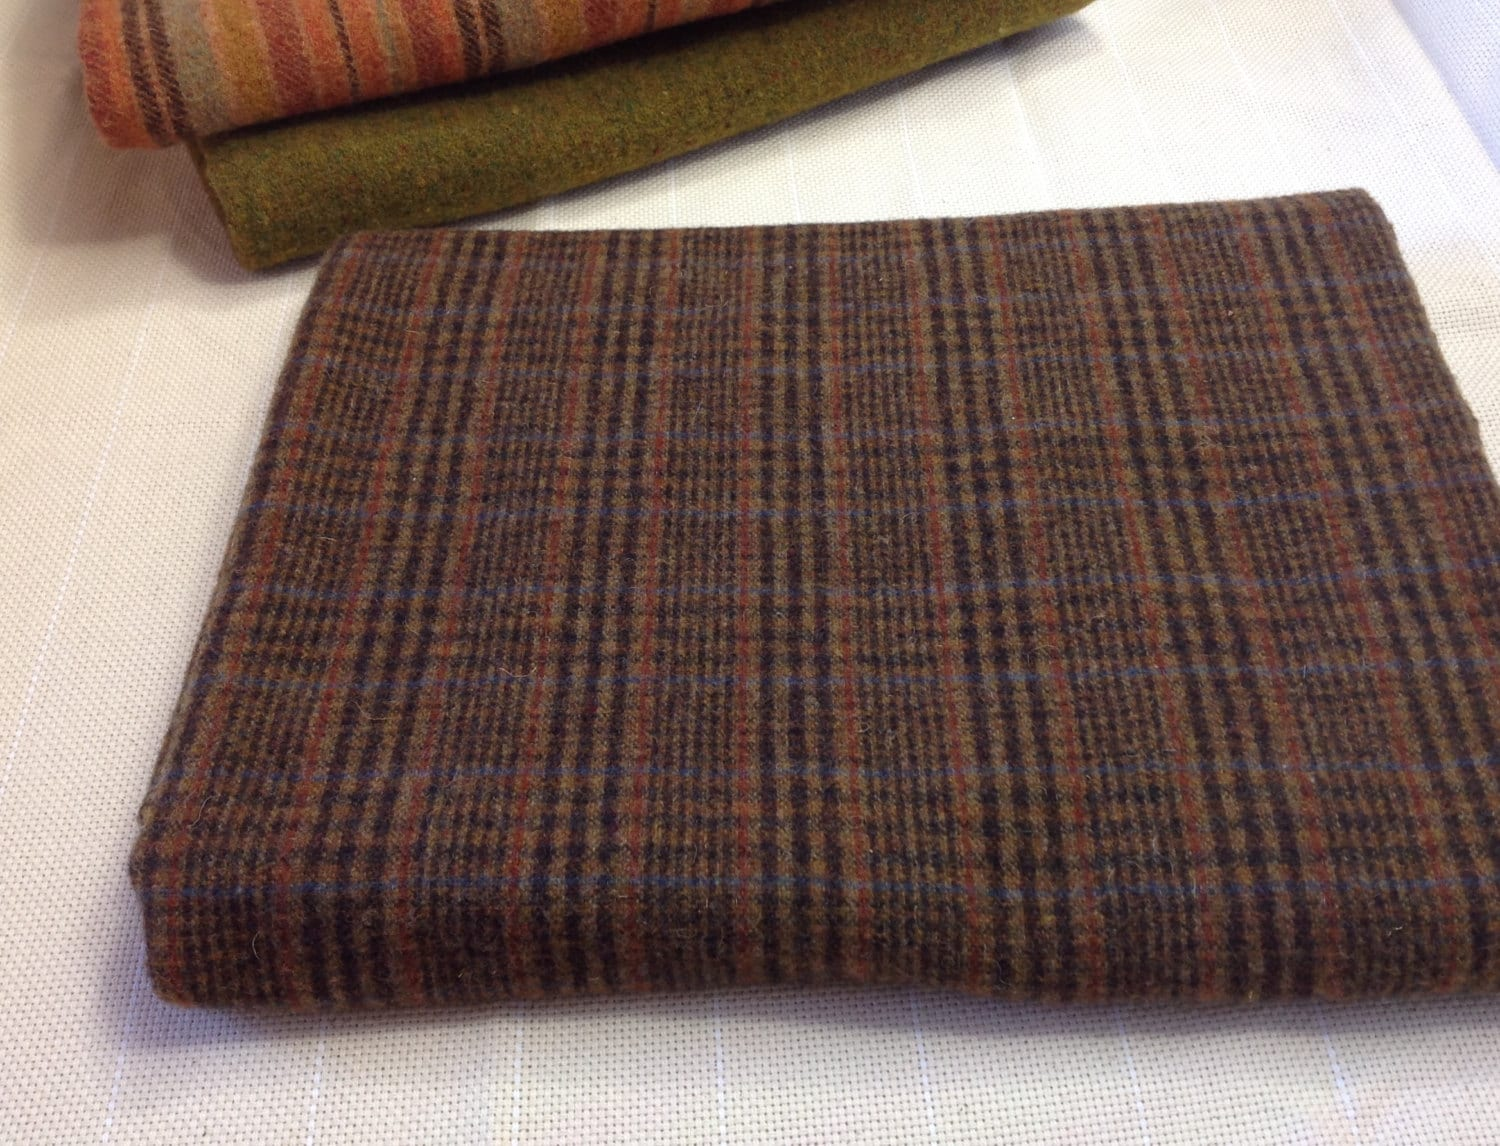 Wool Appliqu\u00e9 and Crafts French Roast Felted Wool Fabric for Rug Hooking